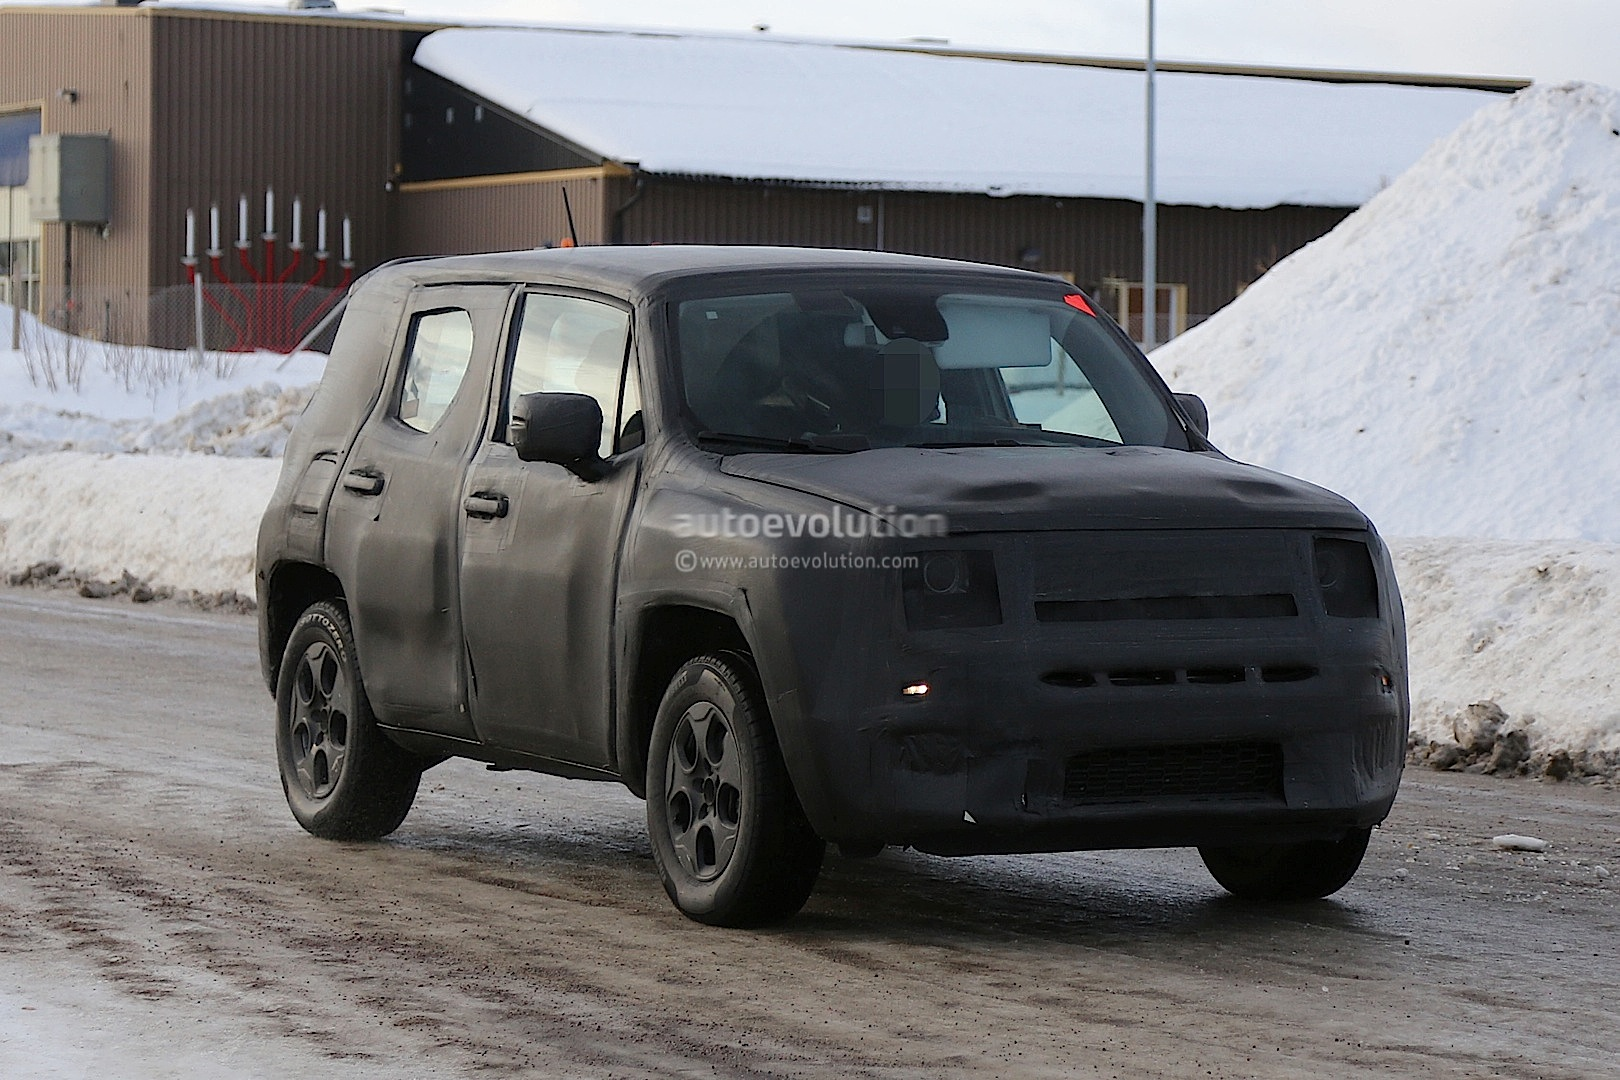 Spyshots: 2015 Jeep Junior Testing Continues Ahead of Rumored Geneva